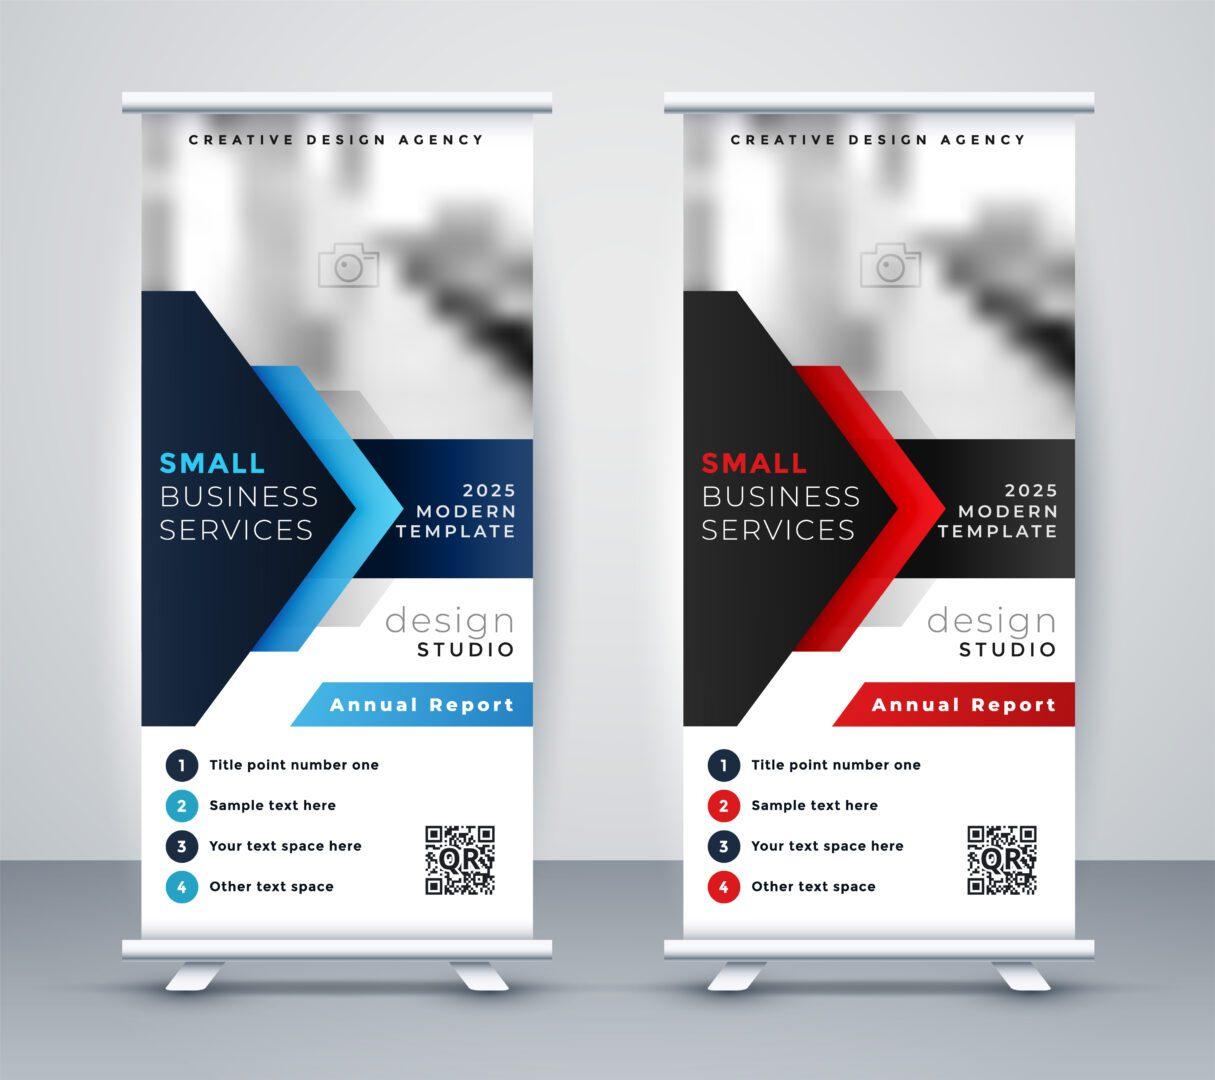 Modern Company Rollup Standee Banners SEI HQ Banner Signage